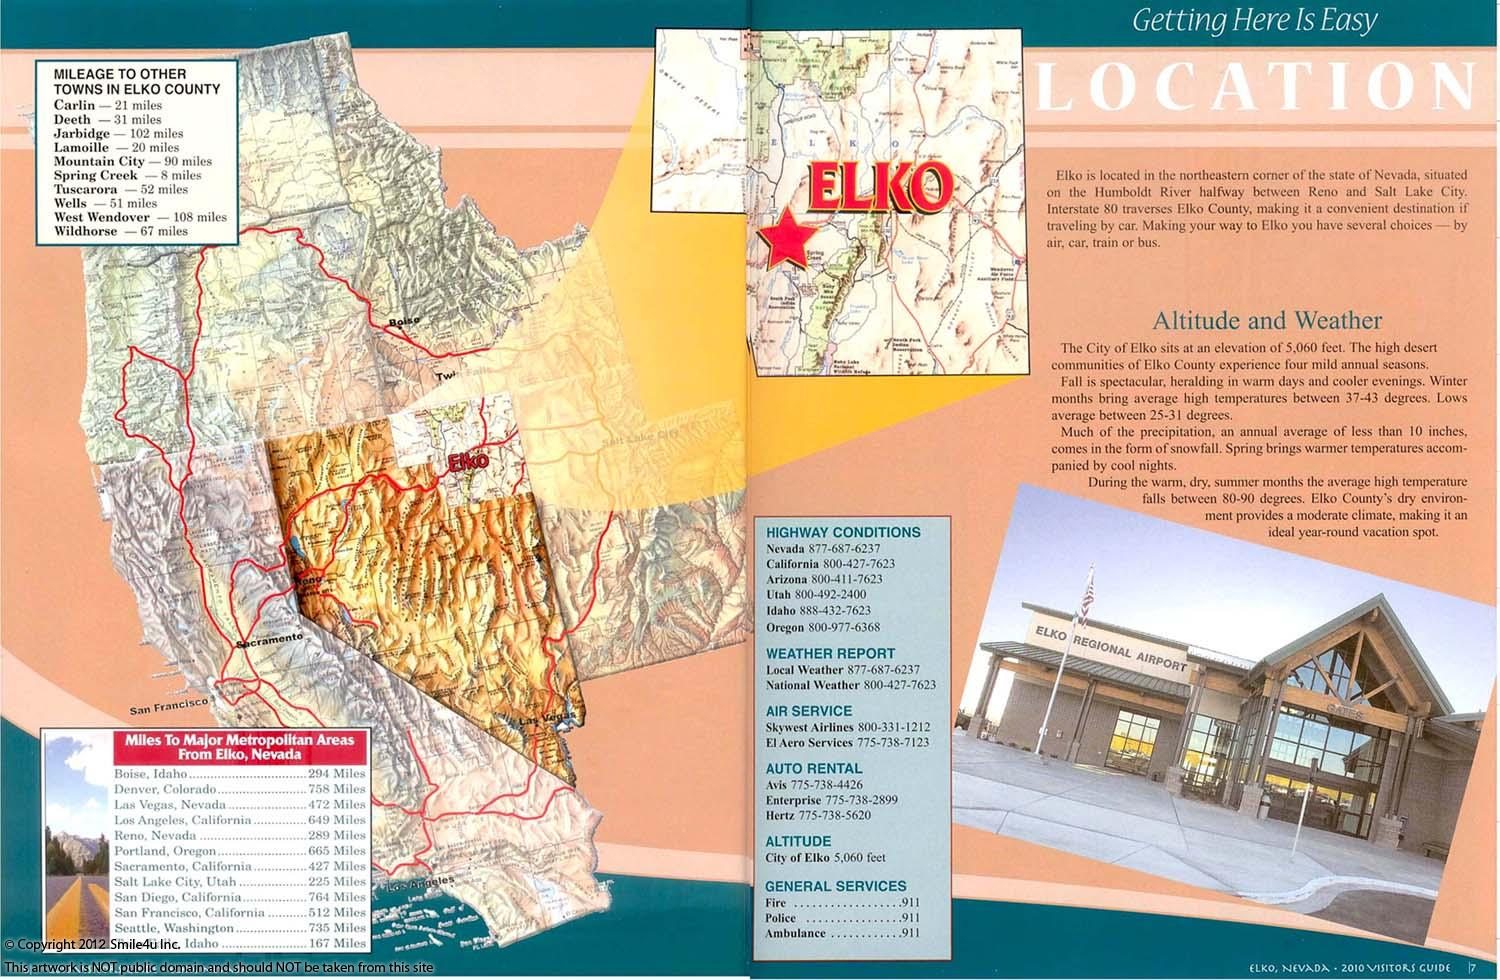 259219_watermarked_Elko Area Map and Information.jpg